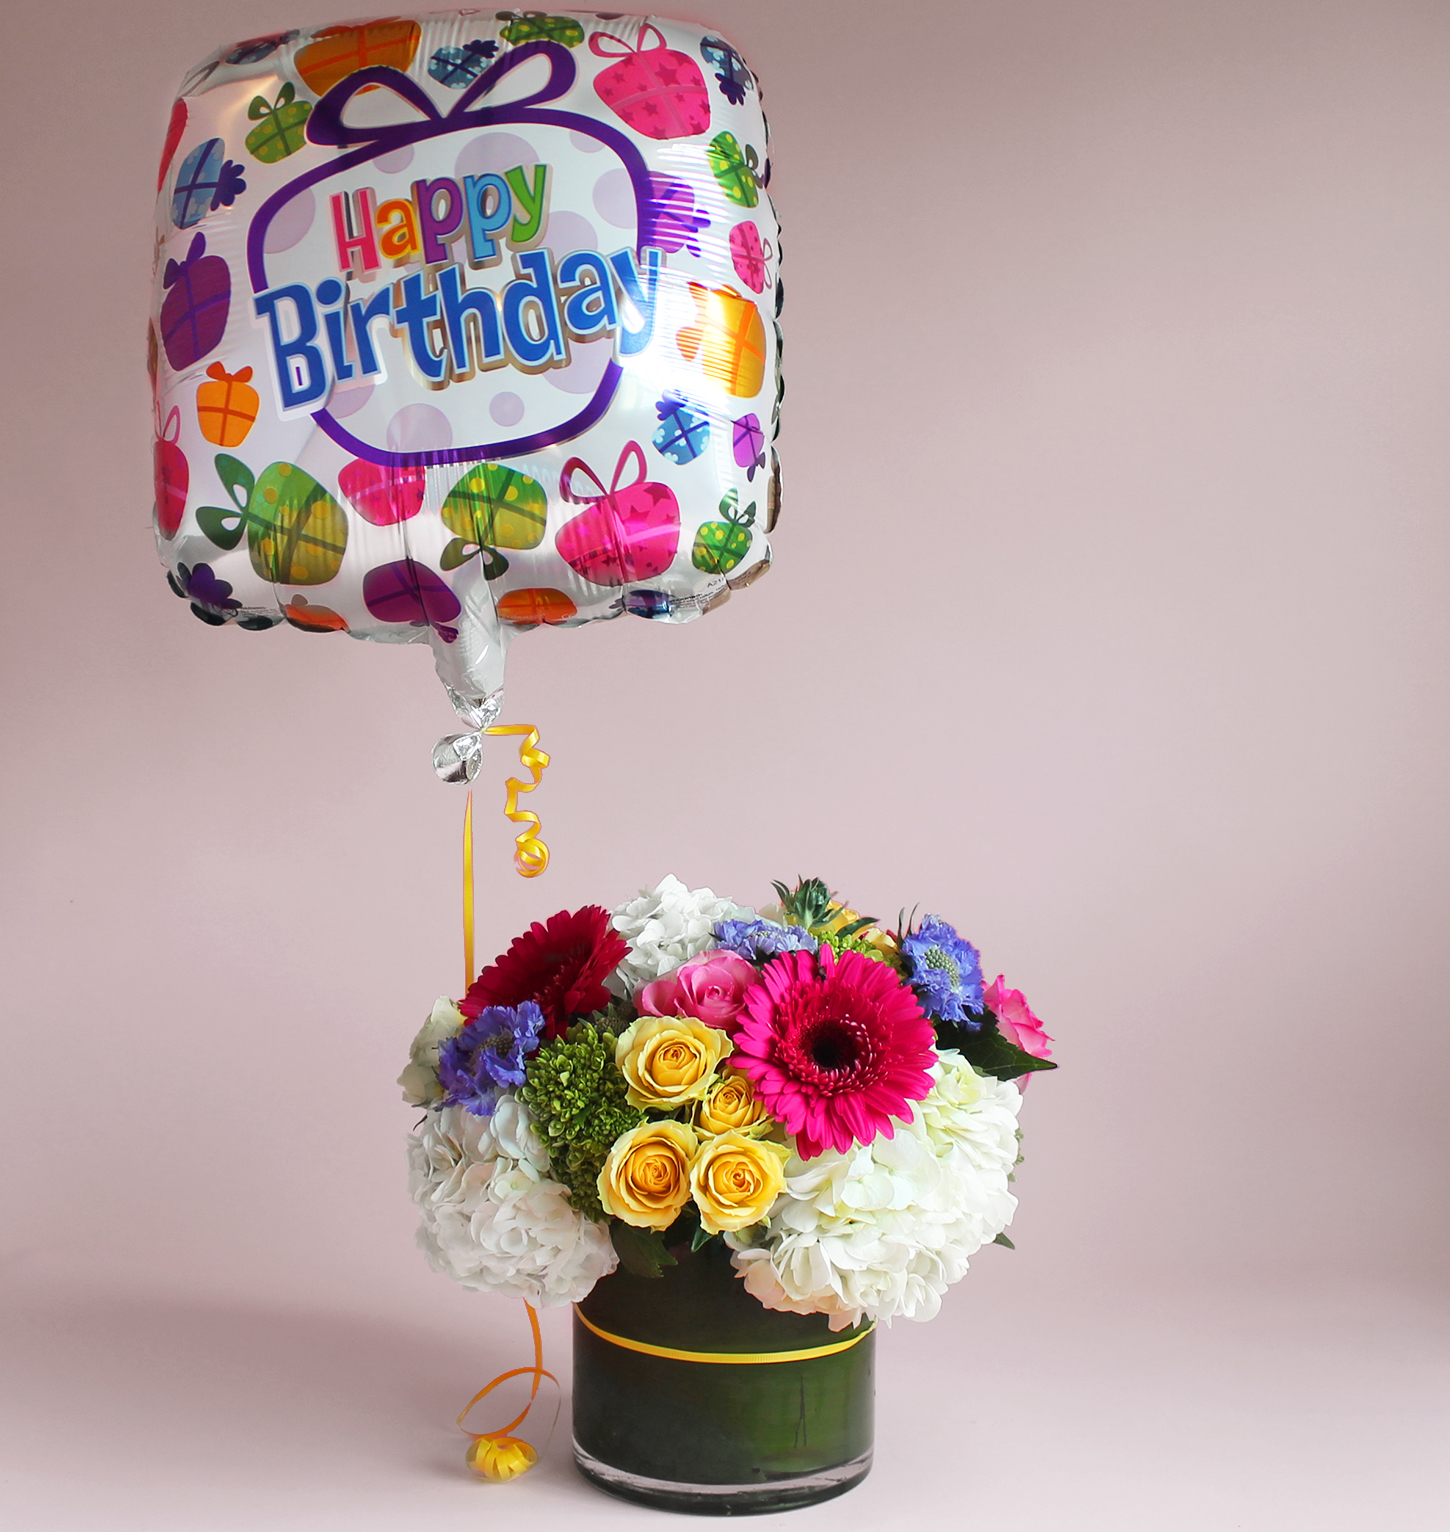 Birthday Celebration from Valley Forge Flowers in Wayne, PA